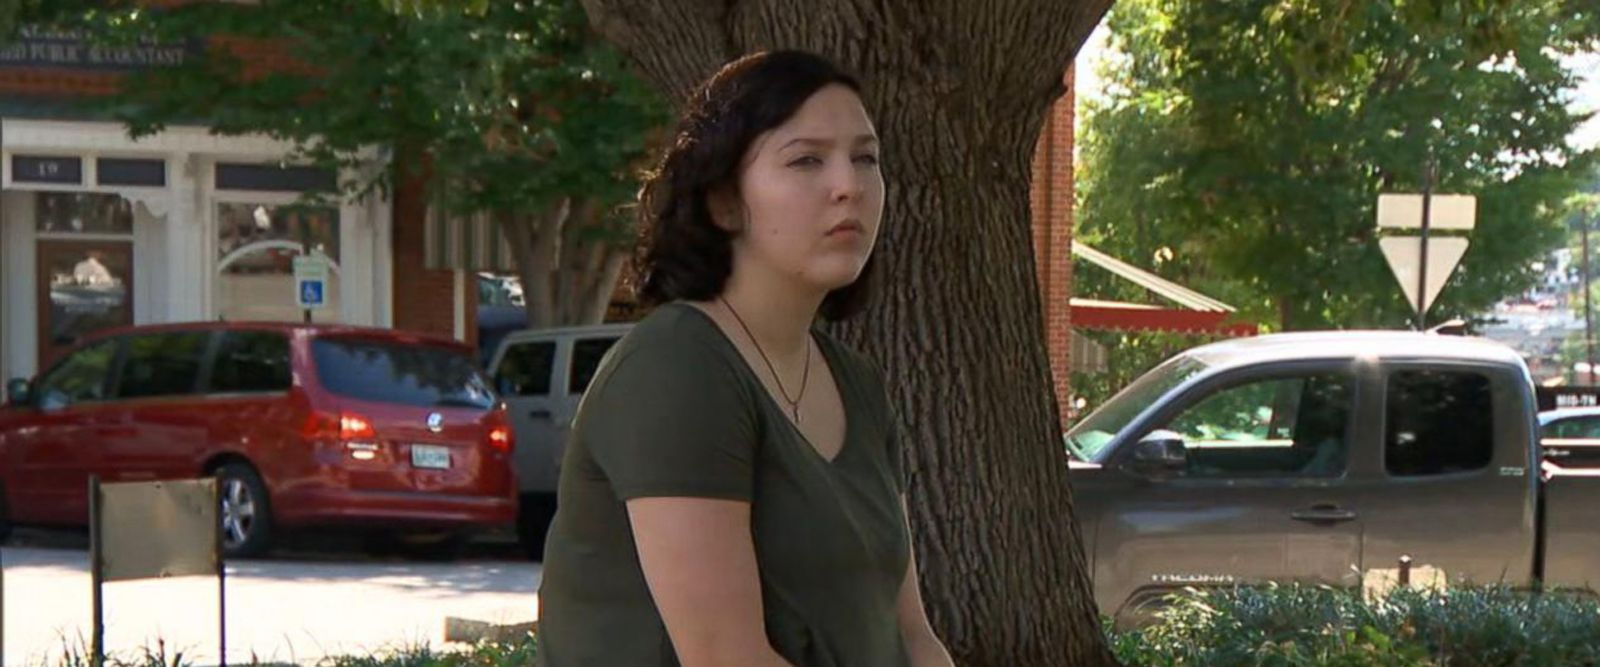 VIDEO: Tennessee teen taken by teacher says adults failed to protect her: Part 6